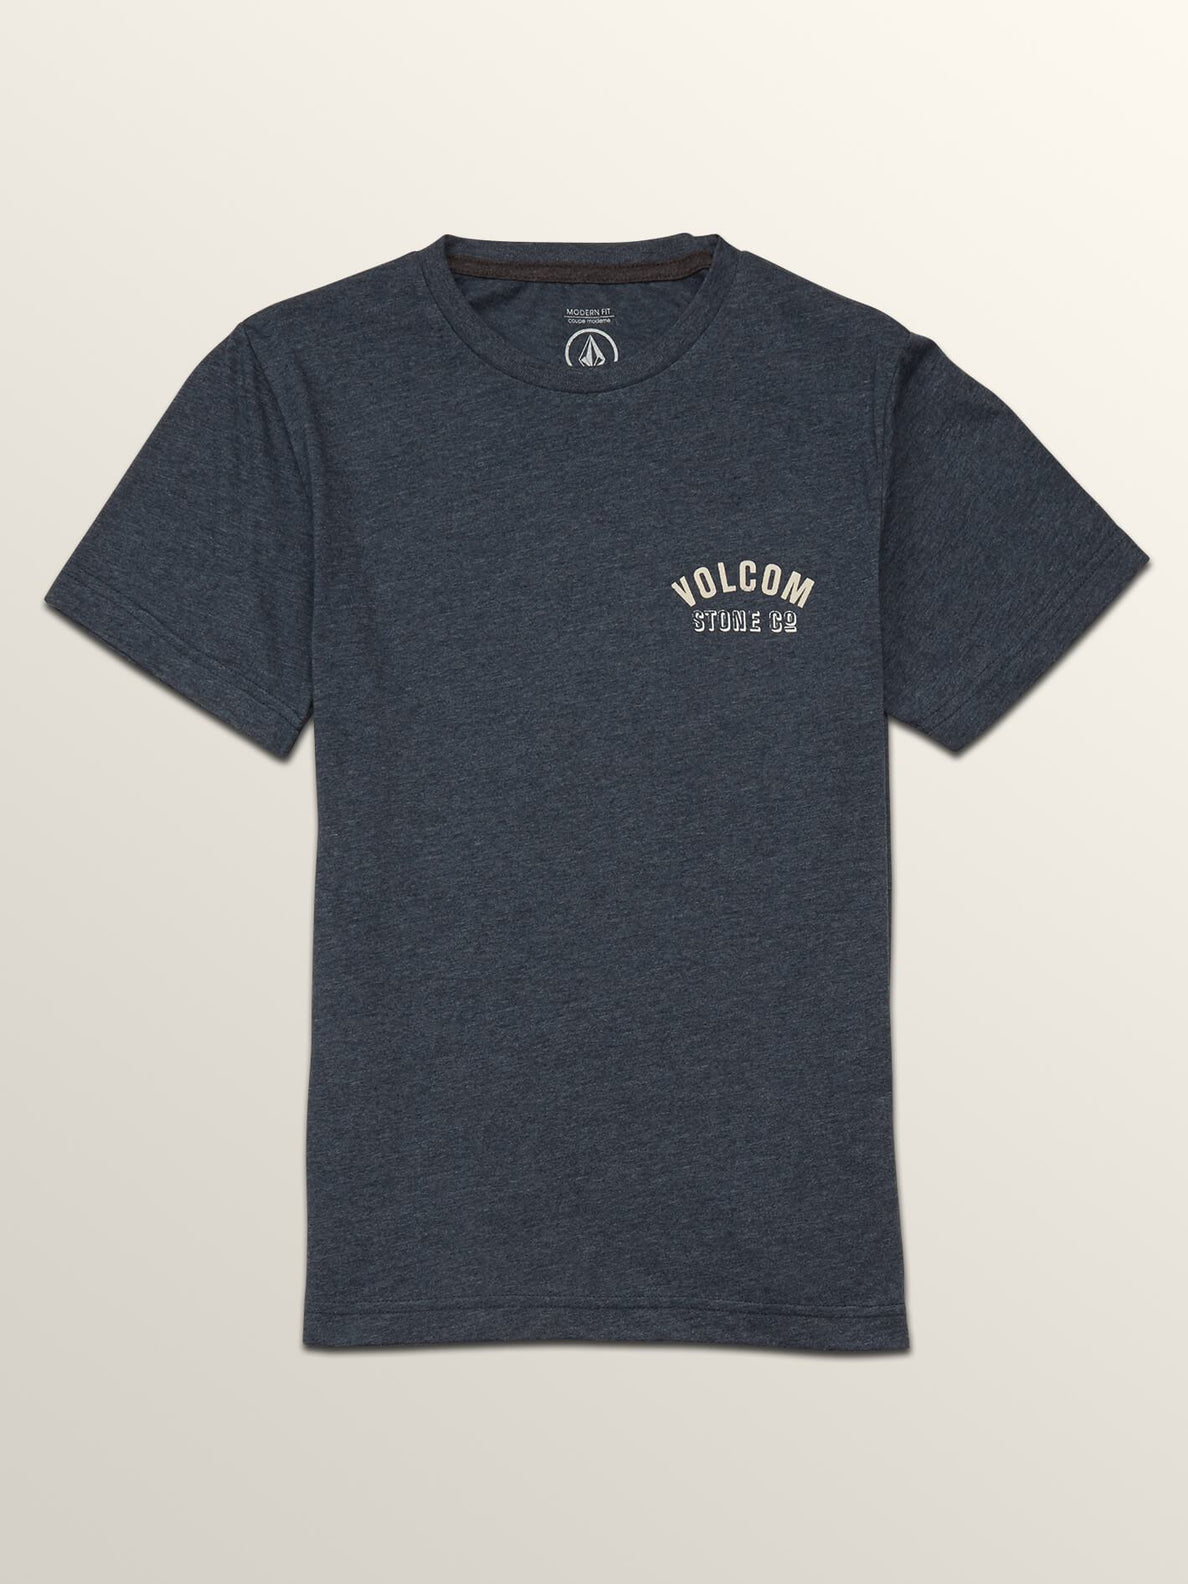 Big Boys Safe Bet Short Sleeve Tee In Navy, Front View